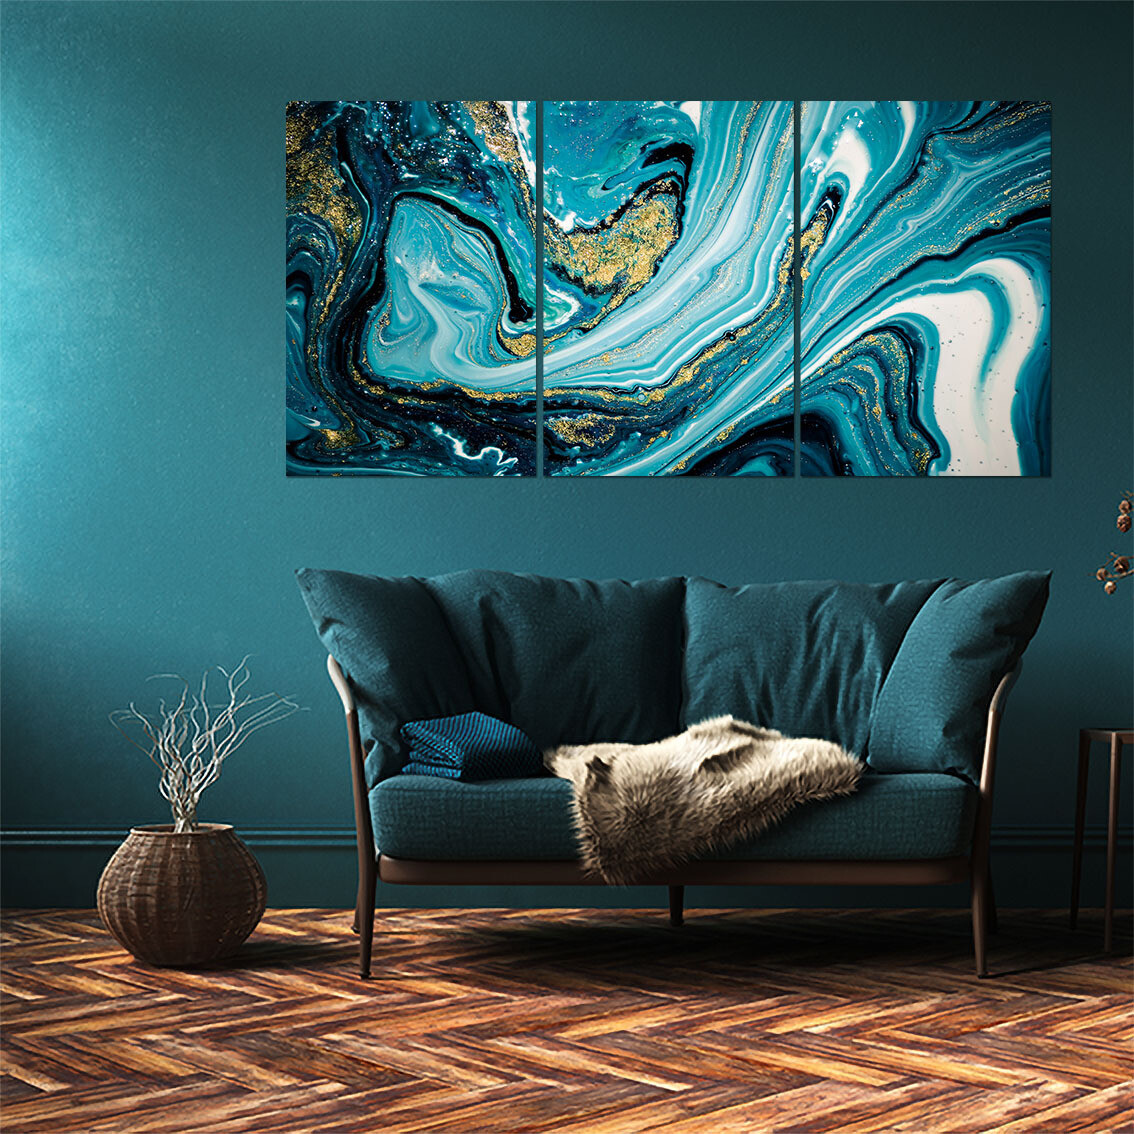 Fluid Art Blue  - Modern Luxury Wall art Printed on Acrylic Glass - Frameless and Ready to Hang